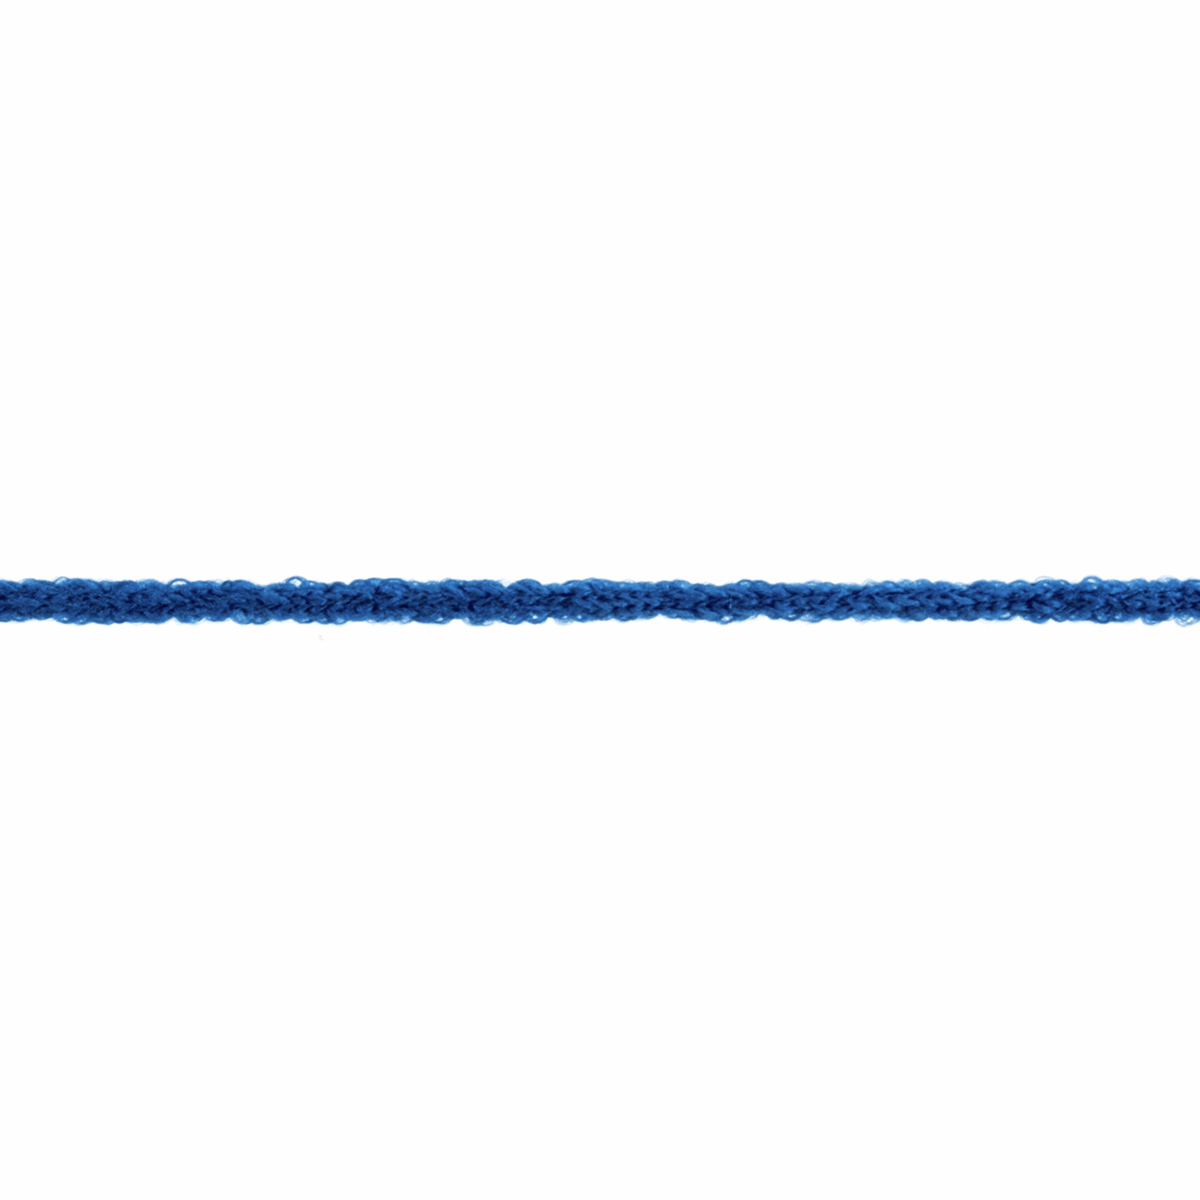 Picture of Fuzzy Elastic: 100m x 2mm: Navy Blue